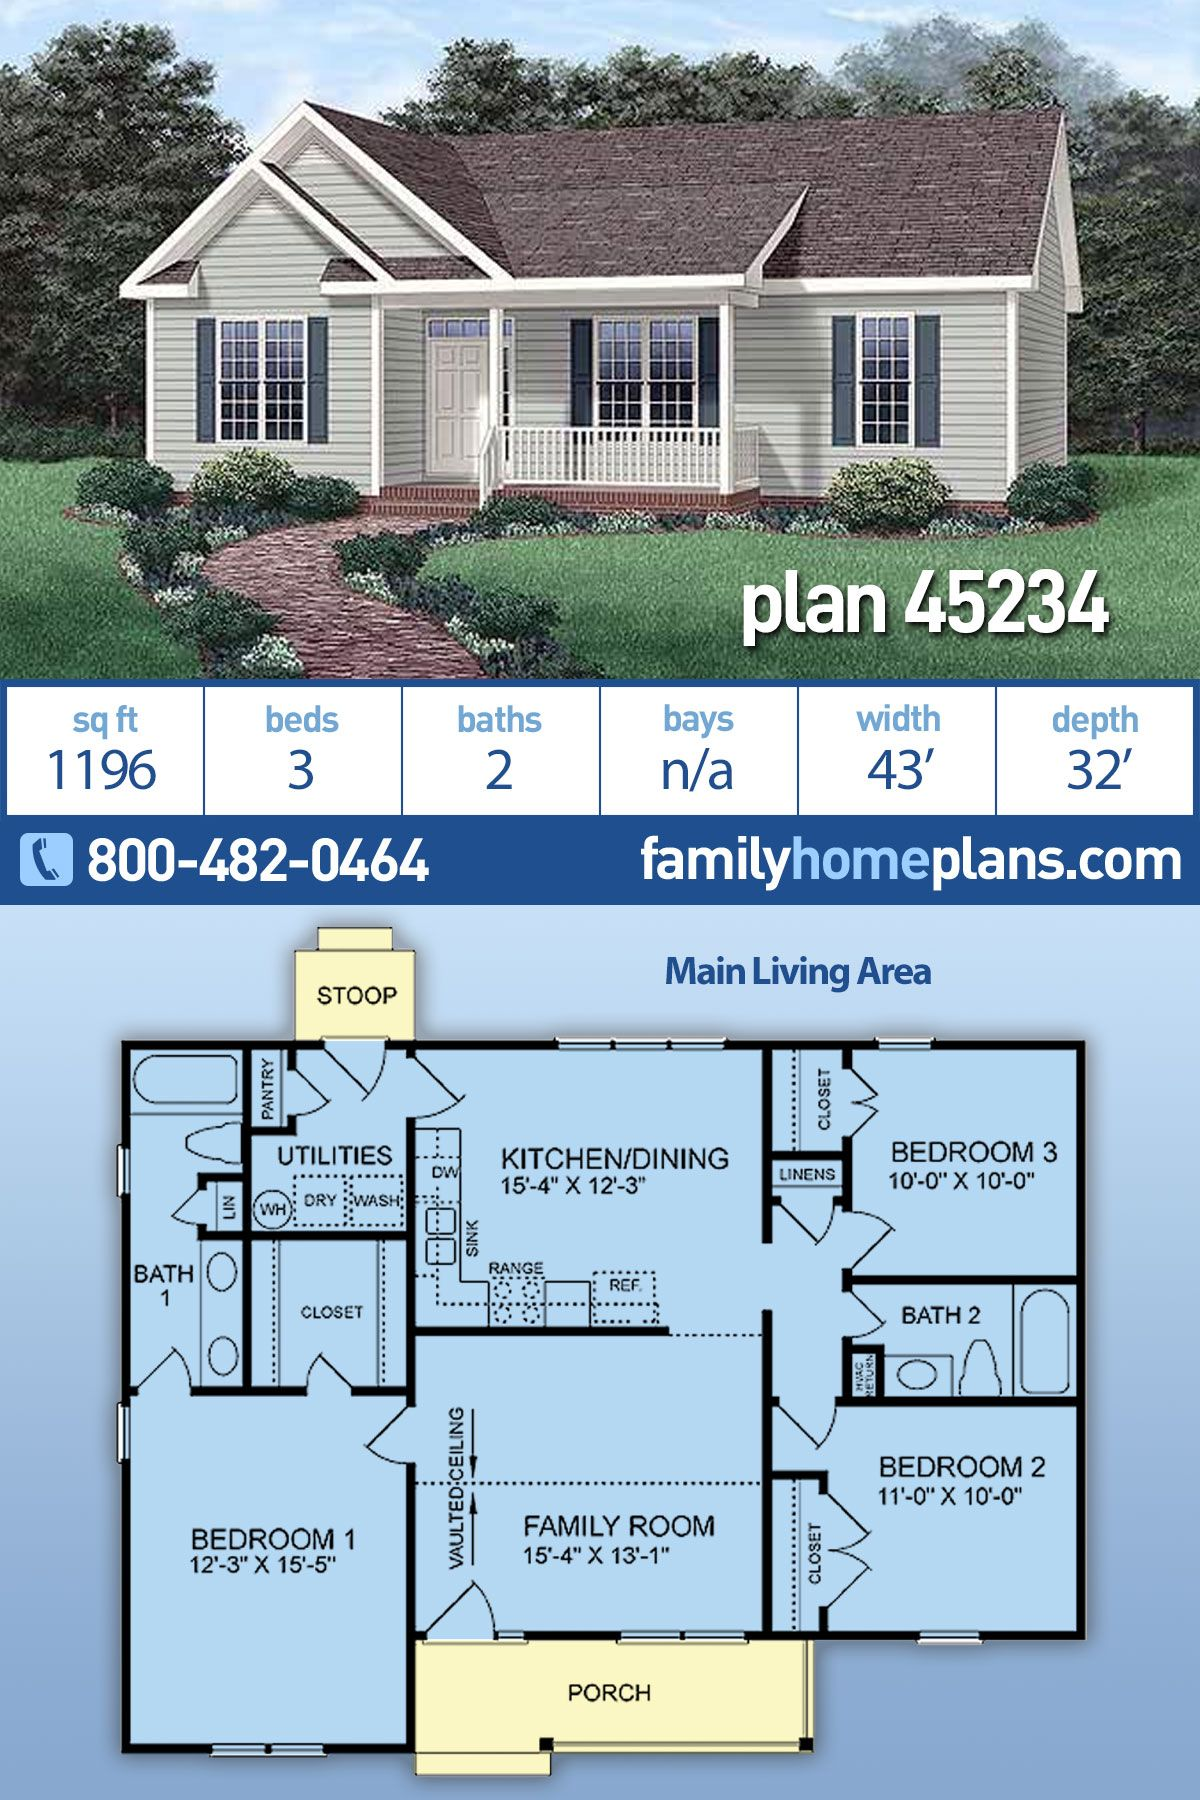 Ranch Style House Plan 45234 With 3 Bed 2 Bath Family House Plans Ranch Style House Plans Basement House Plans